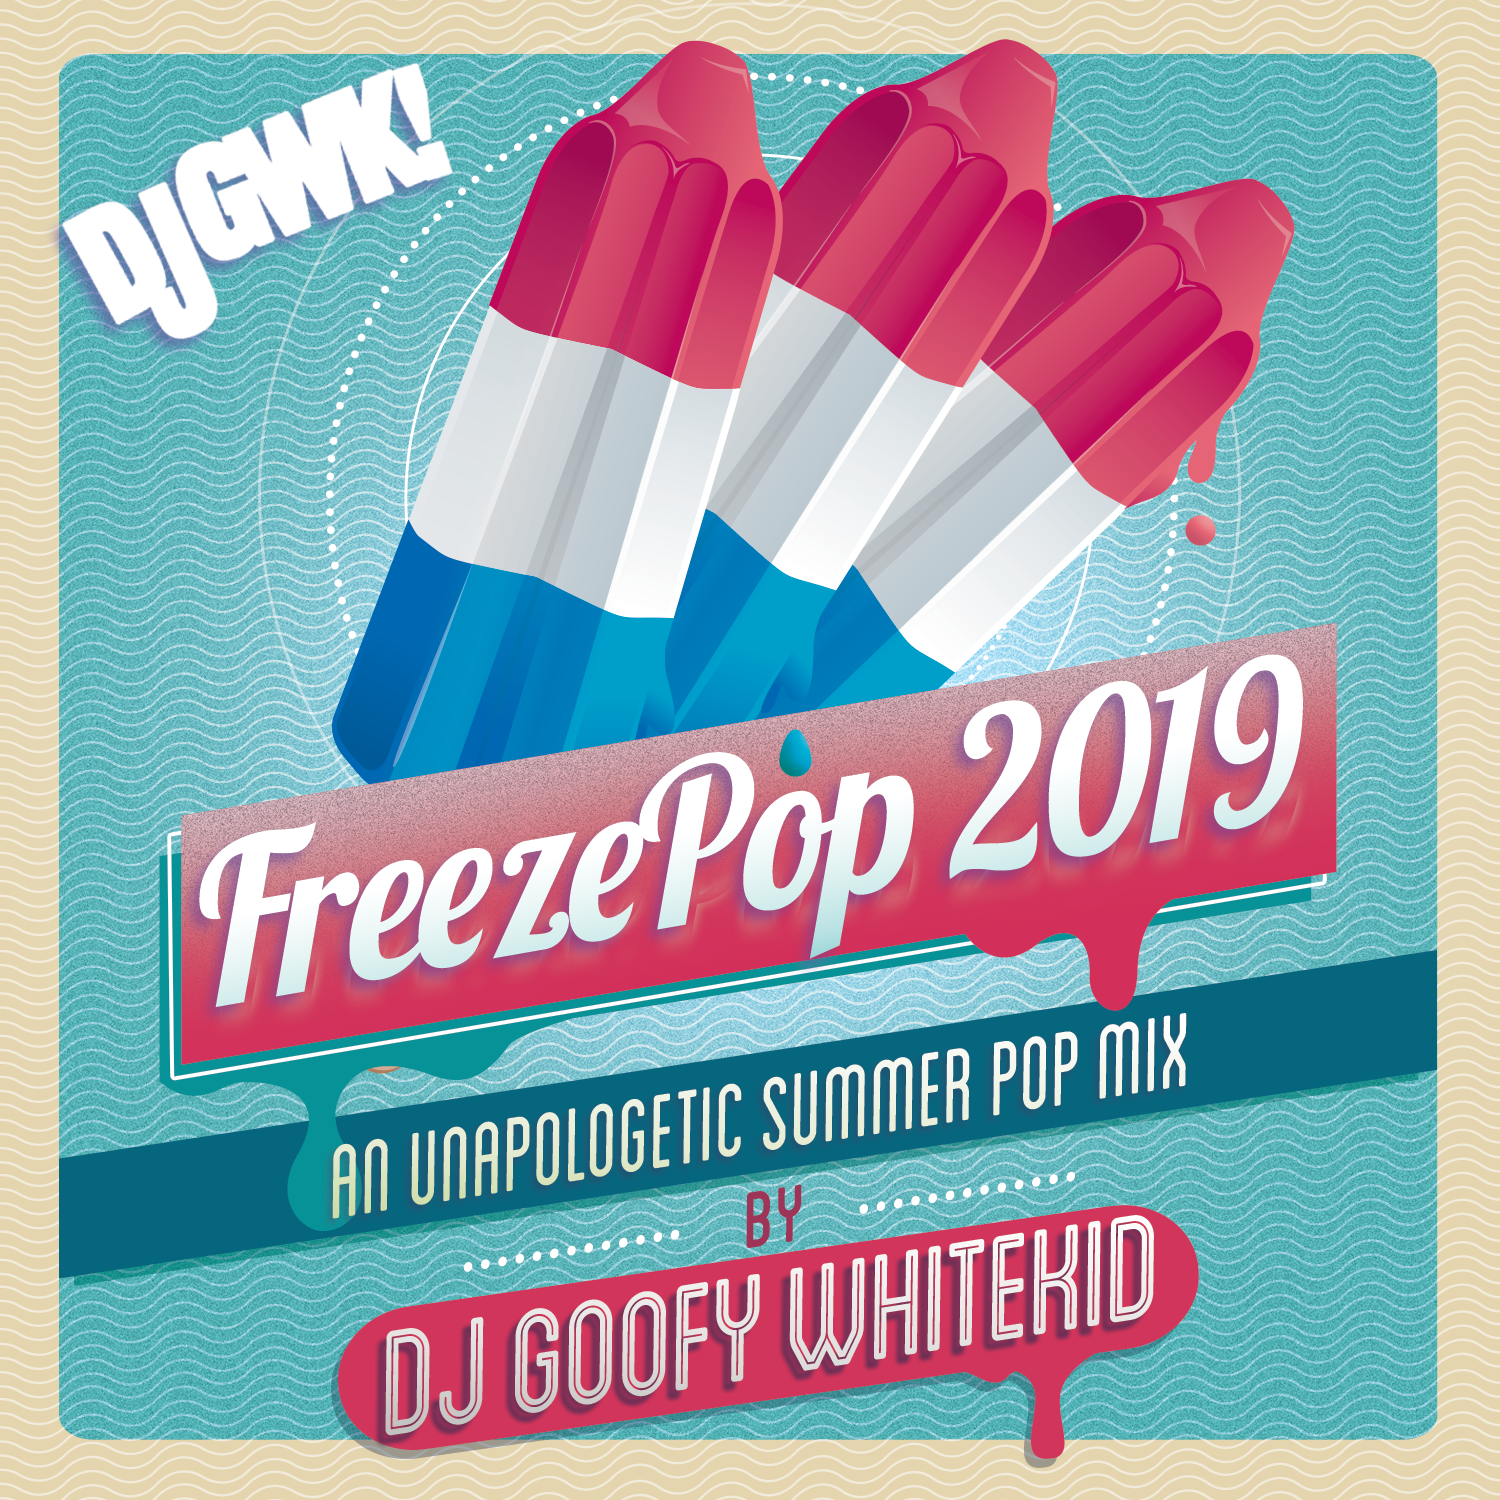 DJ Goofy Whitekid - FreezePop 2019 Cover Art